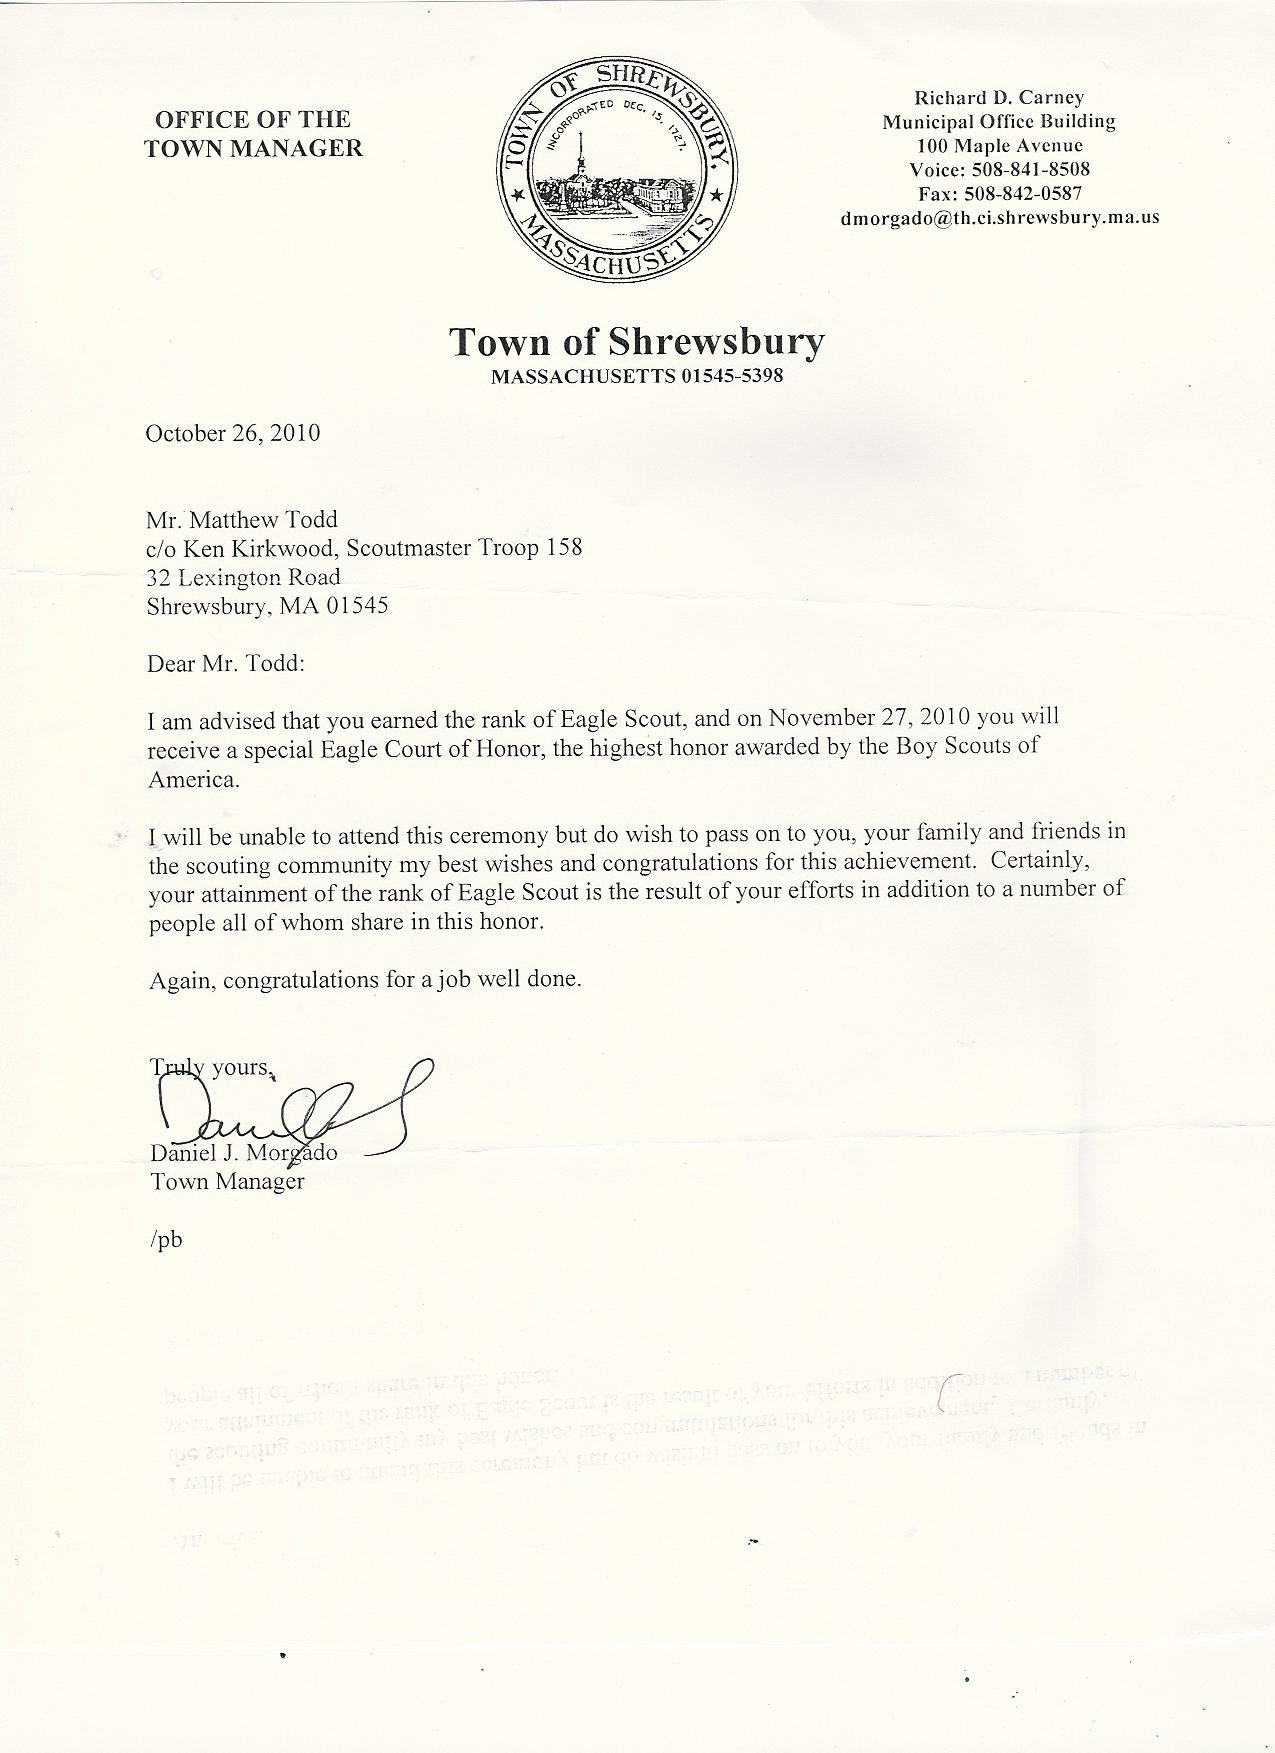 Eagle Scout Recommendation Letter Samples Fresh Eagle Scout Letters Re Mendation